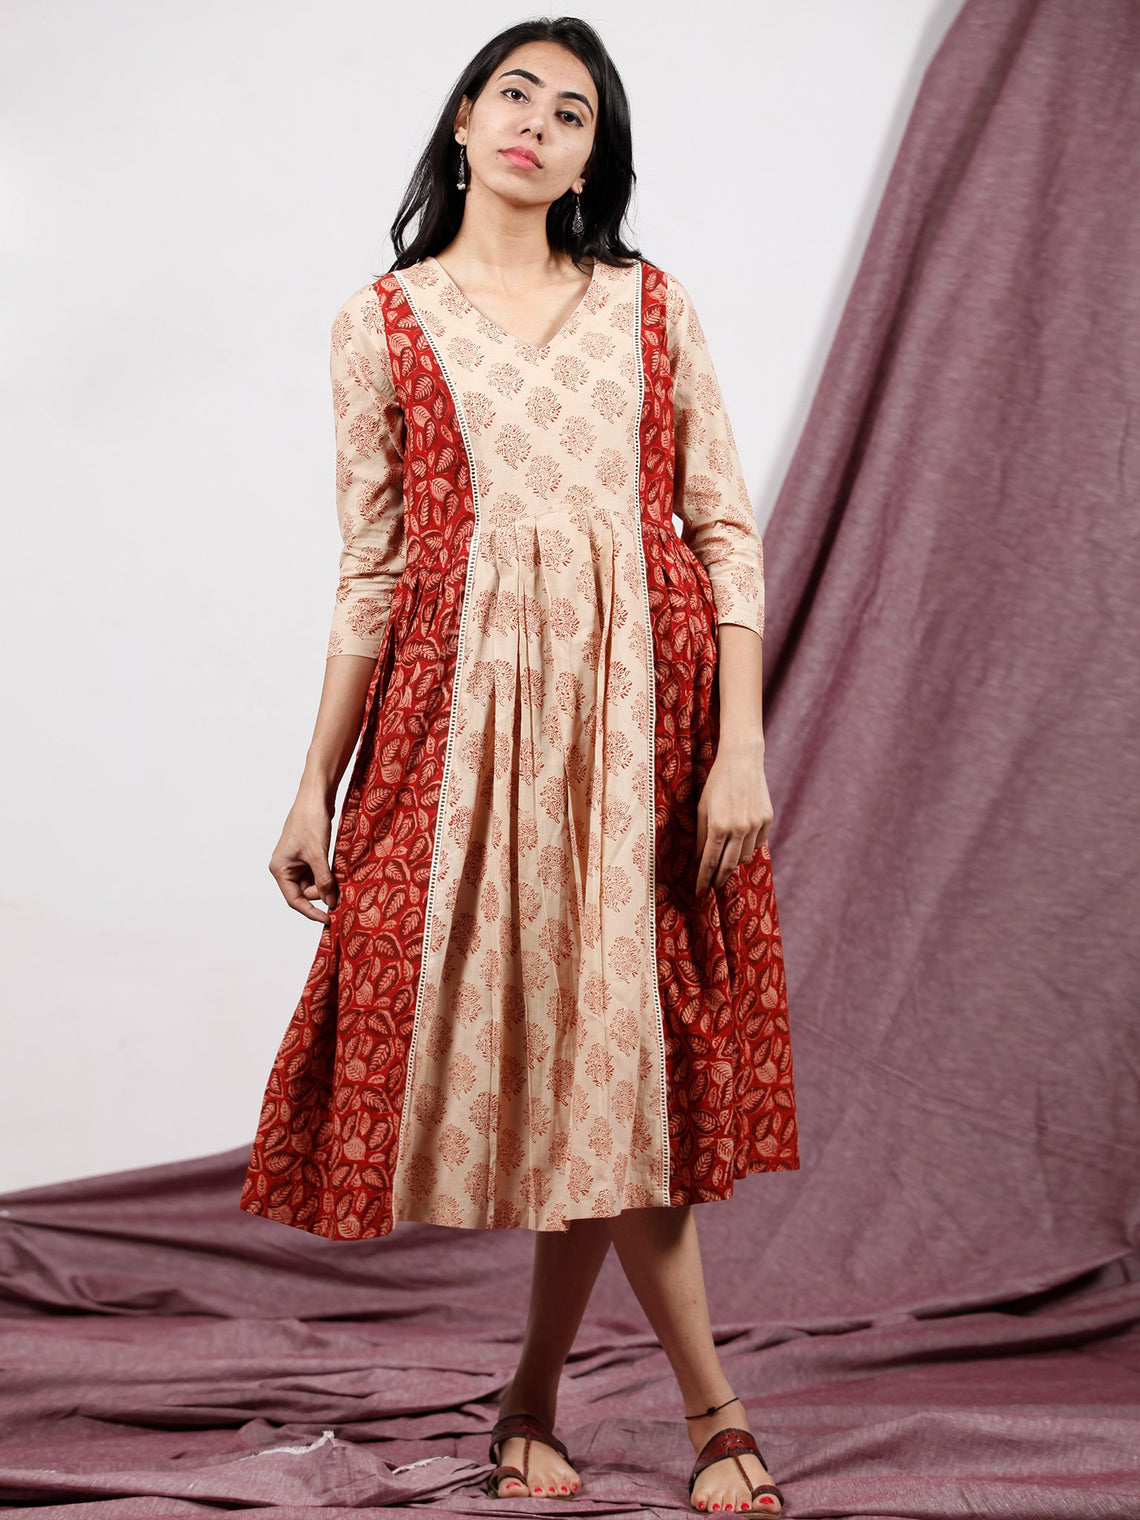 Red Maroon Beige Hand Block Printed Dress With Front Box Pleates - D231F1322